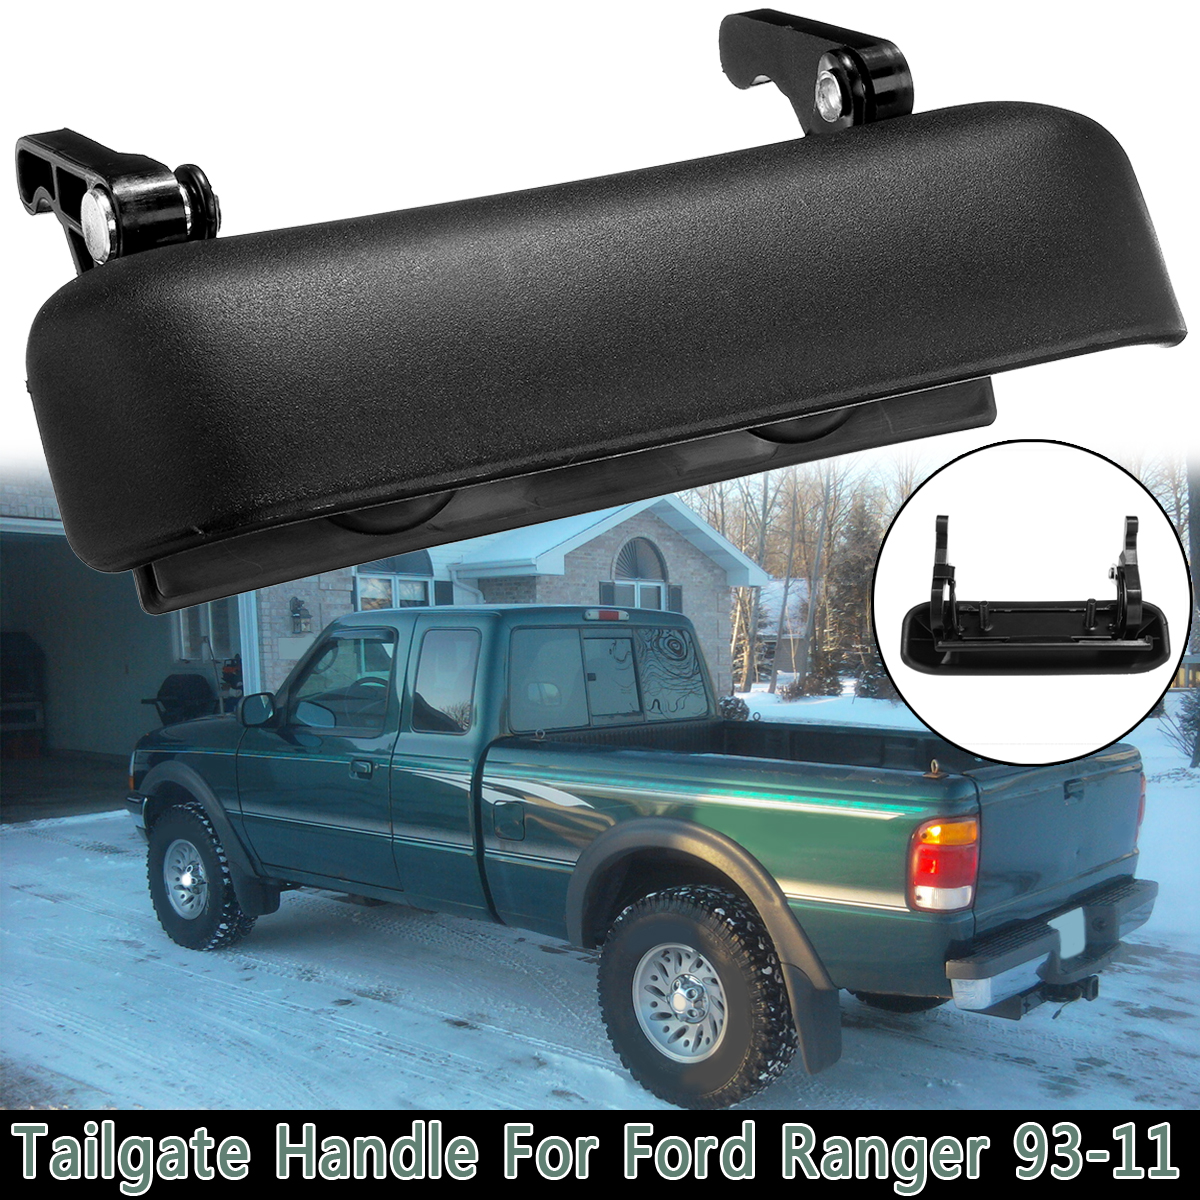 New Tailgate Handle for Ford Ranger FO1915113 1998 to 2005 Exterior